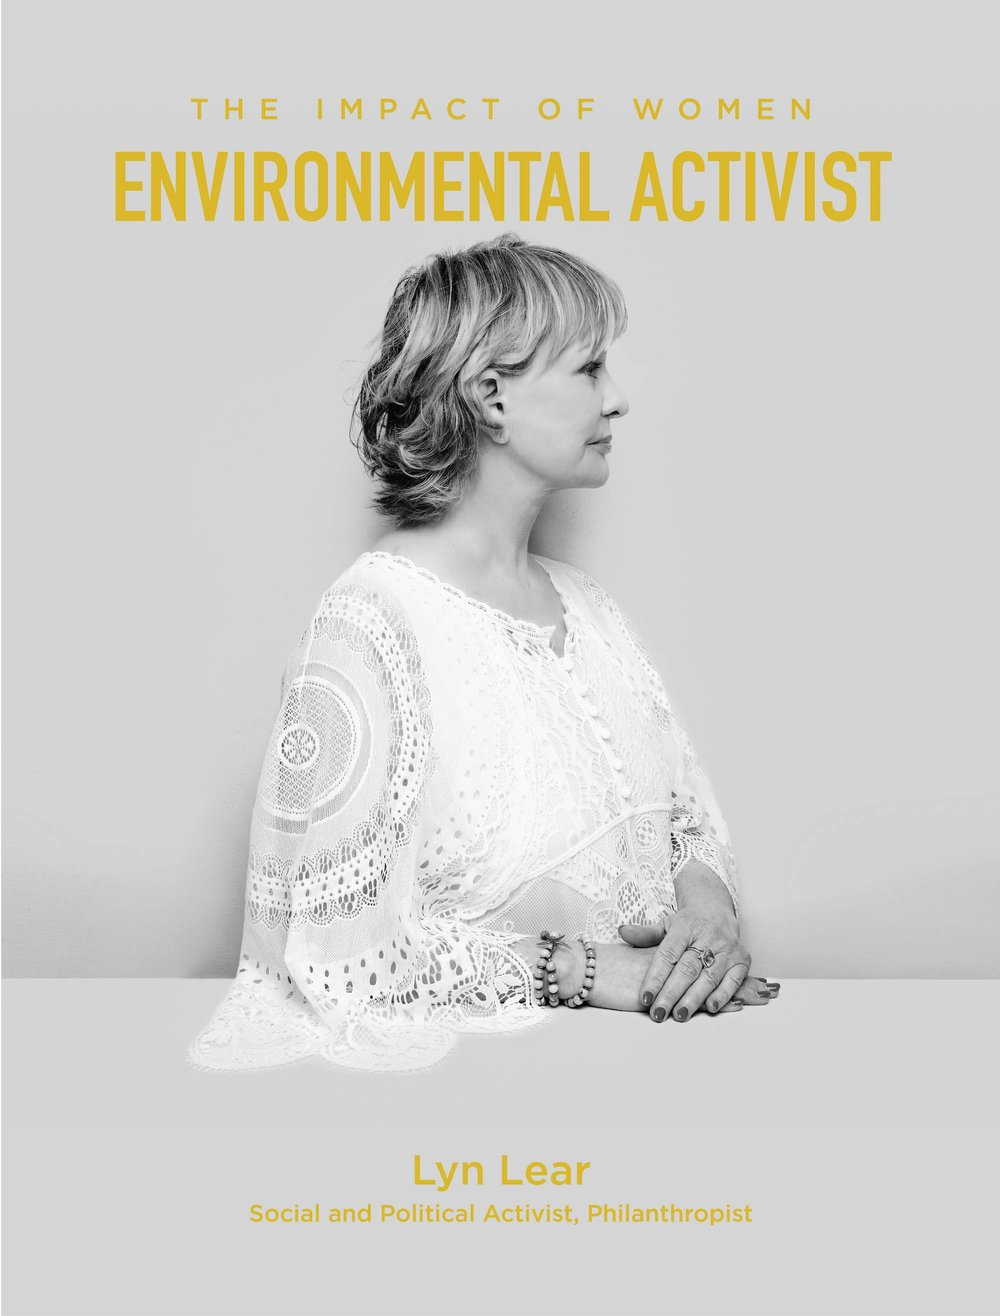 Lyn Lear is an Environmental Activist